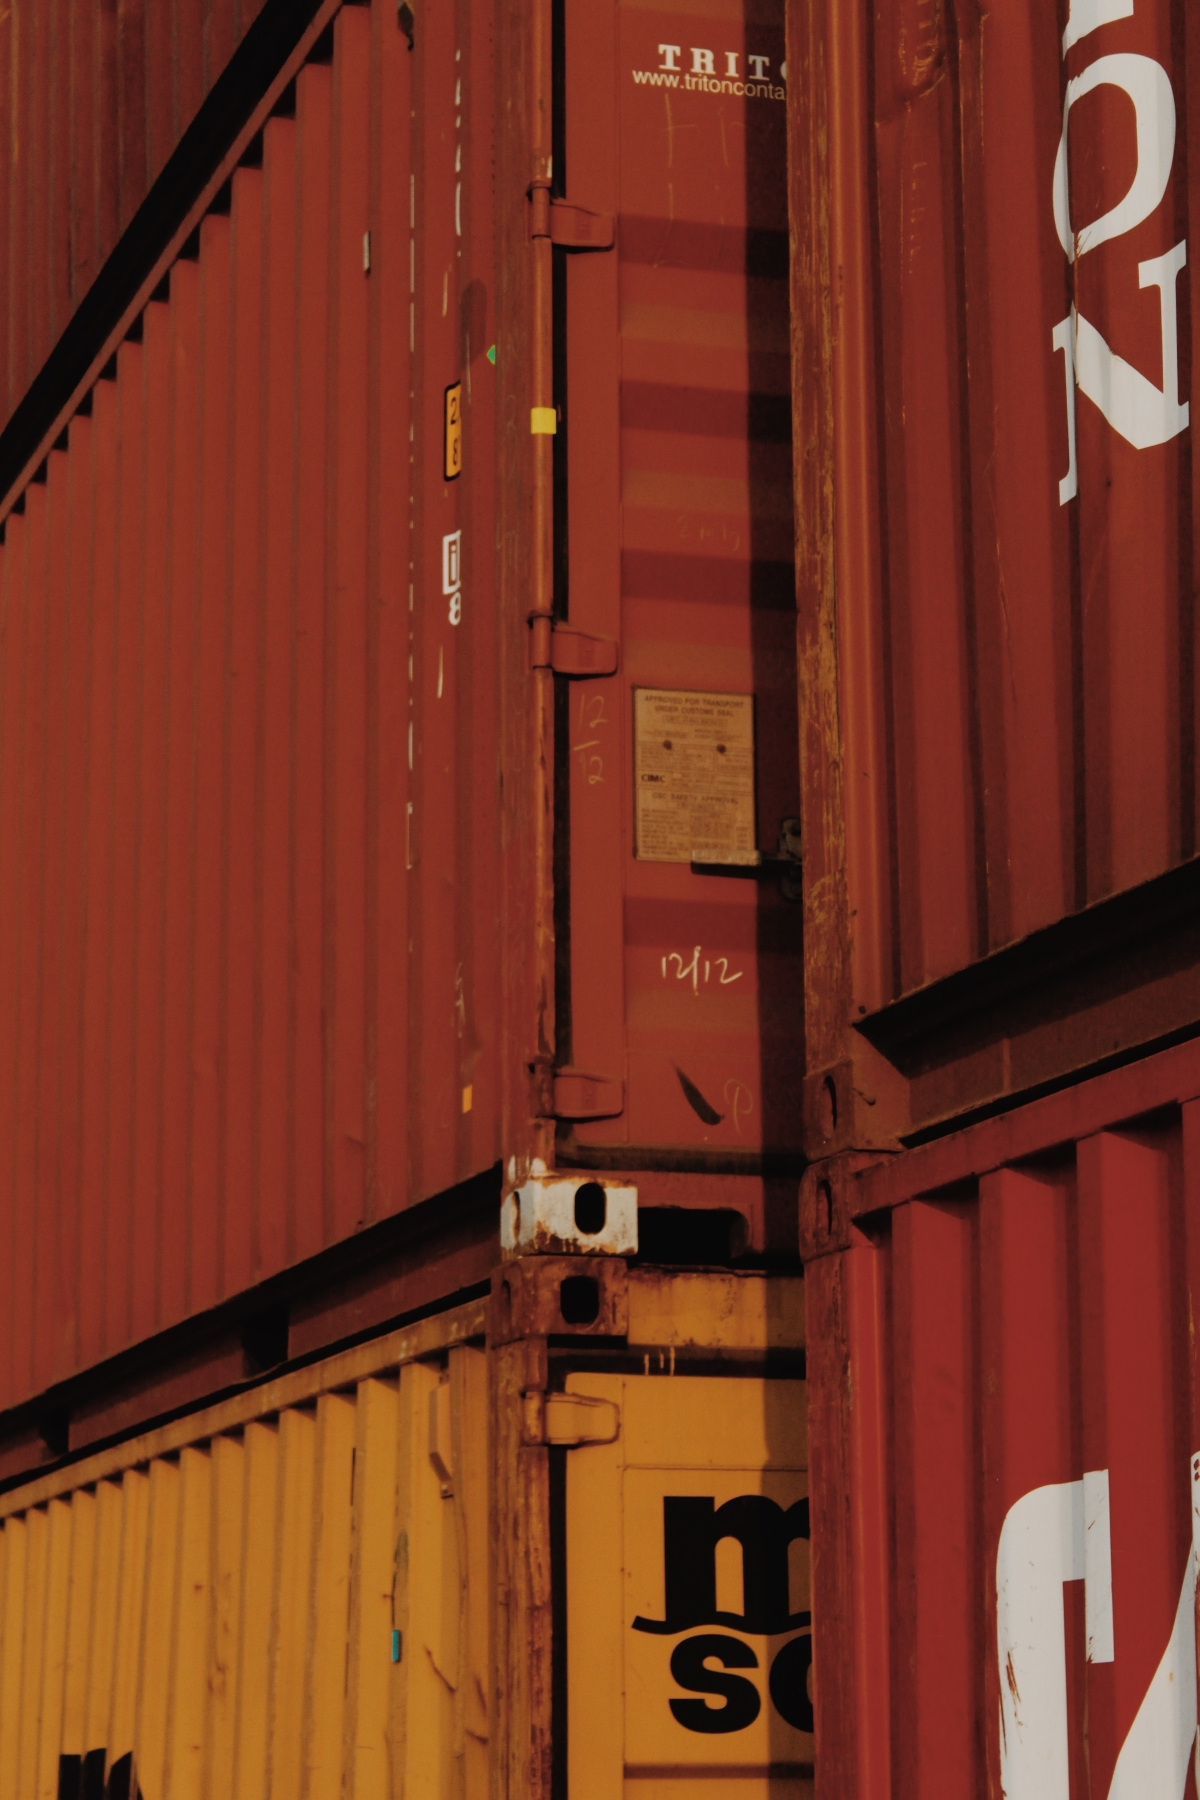 Atmanirbhar Bharat programme: India set to manufacture containers to boost exports